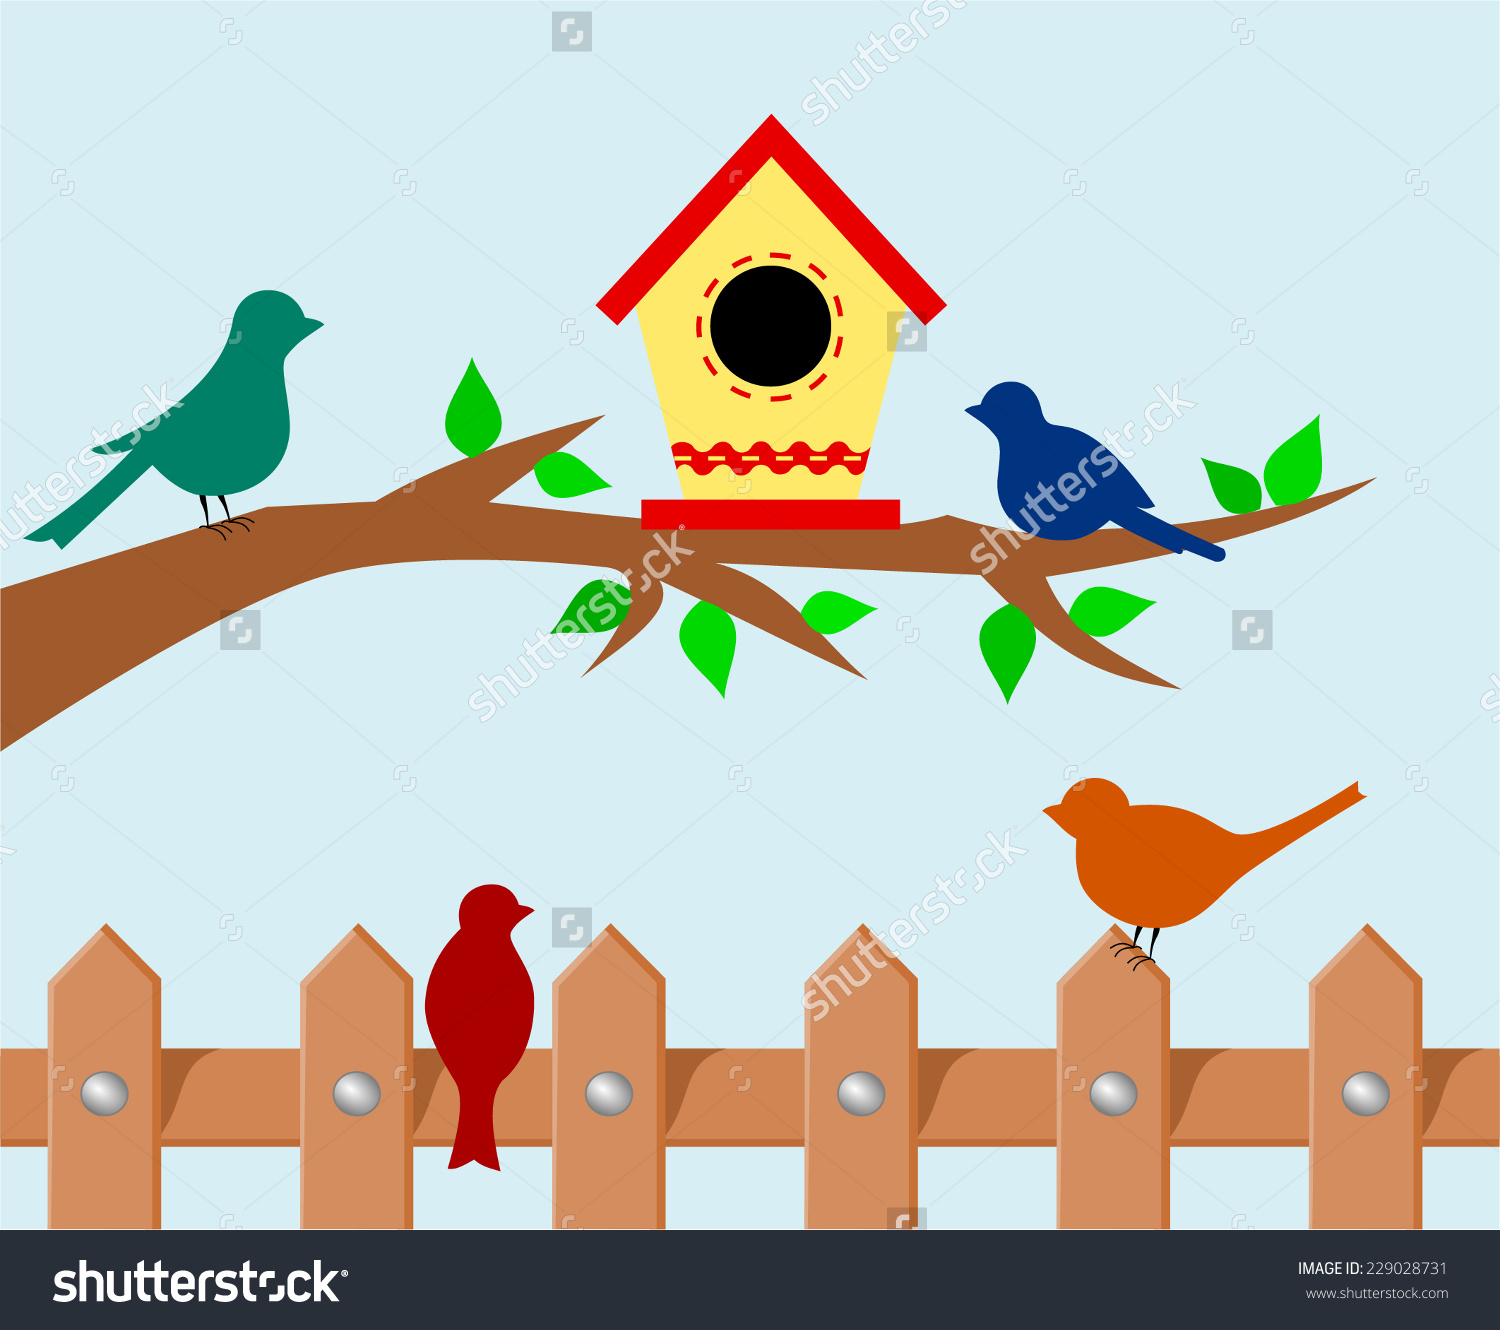 Tree Branch Bird House Set Colorful Stock Vector 229028731.